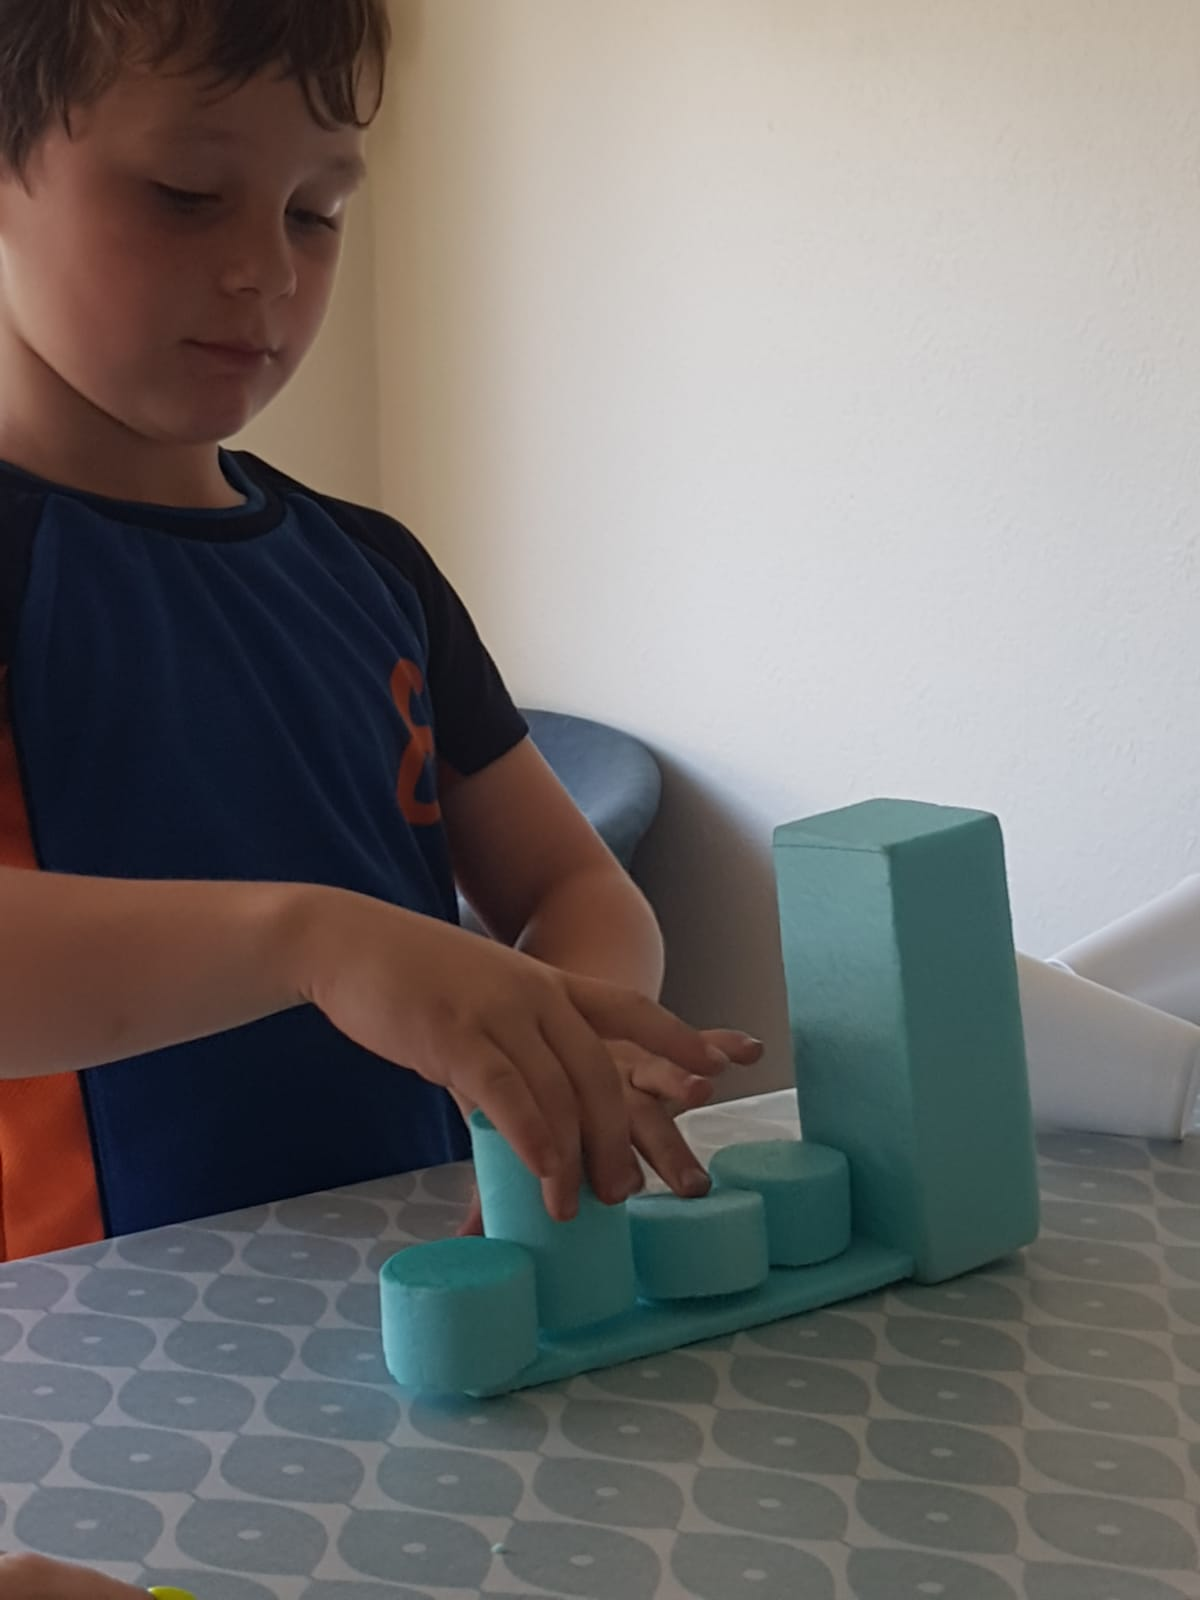 Test 3: Tangible messaging blocks or toys?